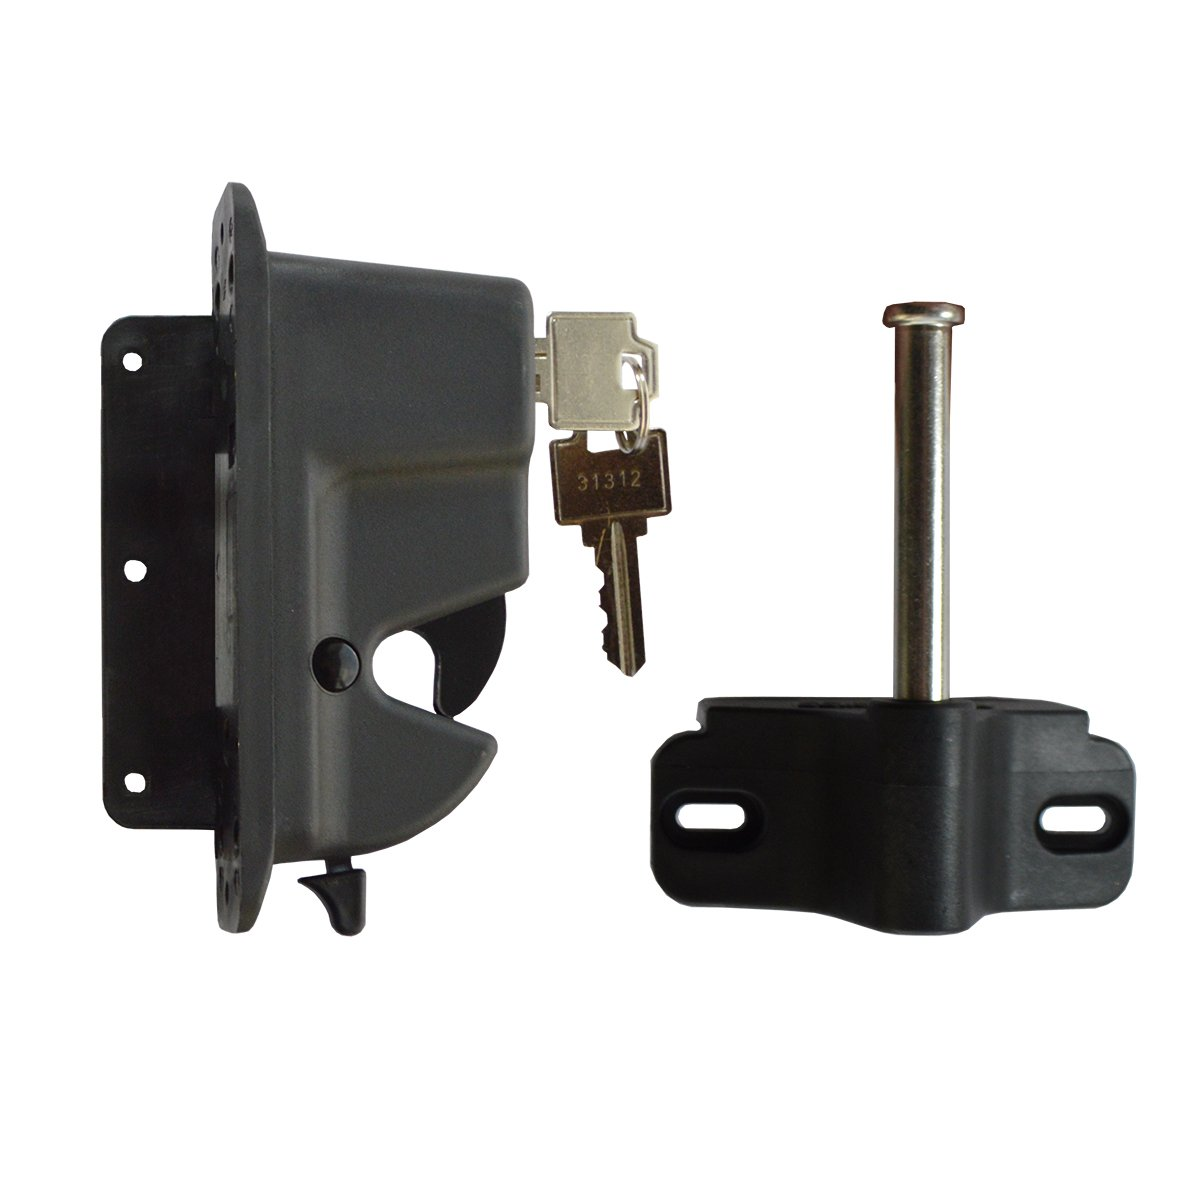 Keystone Black Nylon Polymer Key-Lockable Latch | 1 Sided | Keyed Alike | KLADV-P1-BK-KA by Nationwide Industries (Image #1)